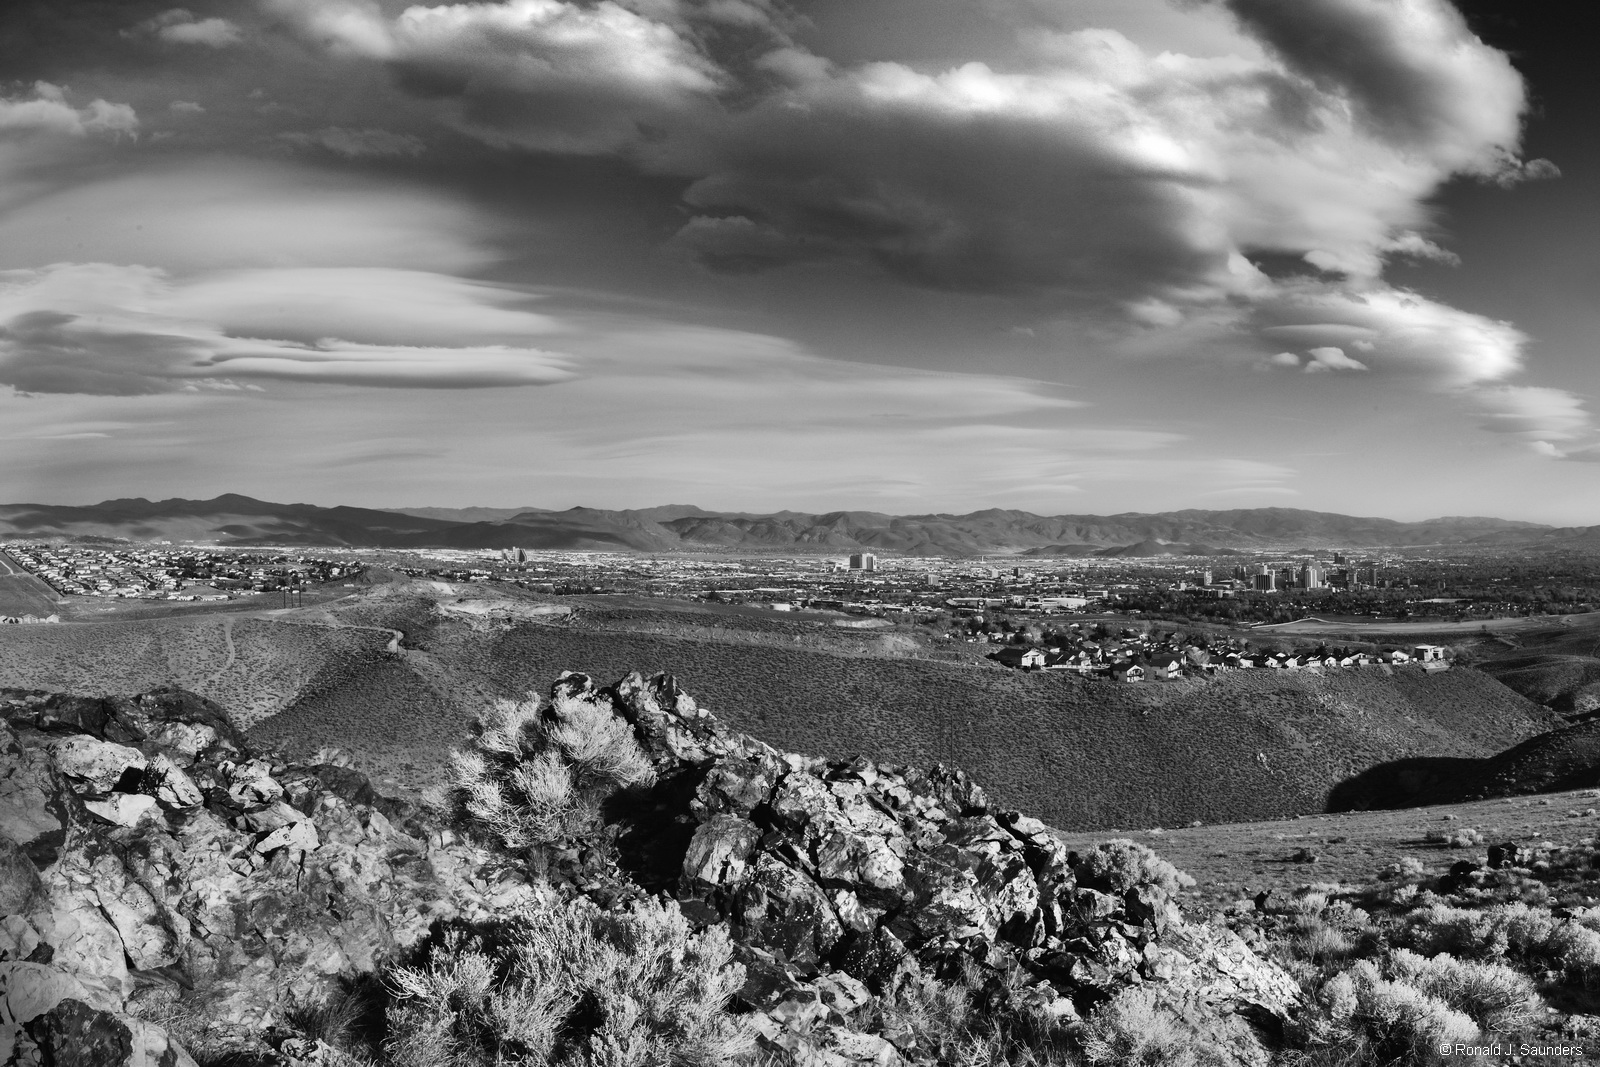 ron, saunders, ronald, ronald j saunders, landscape, photography, nevada, california, image, black, white, exhibition, Reno, Nevada, desert, photography, photo